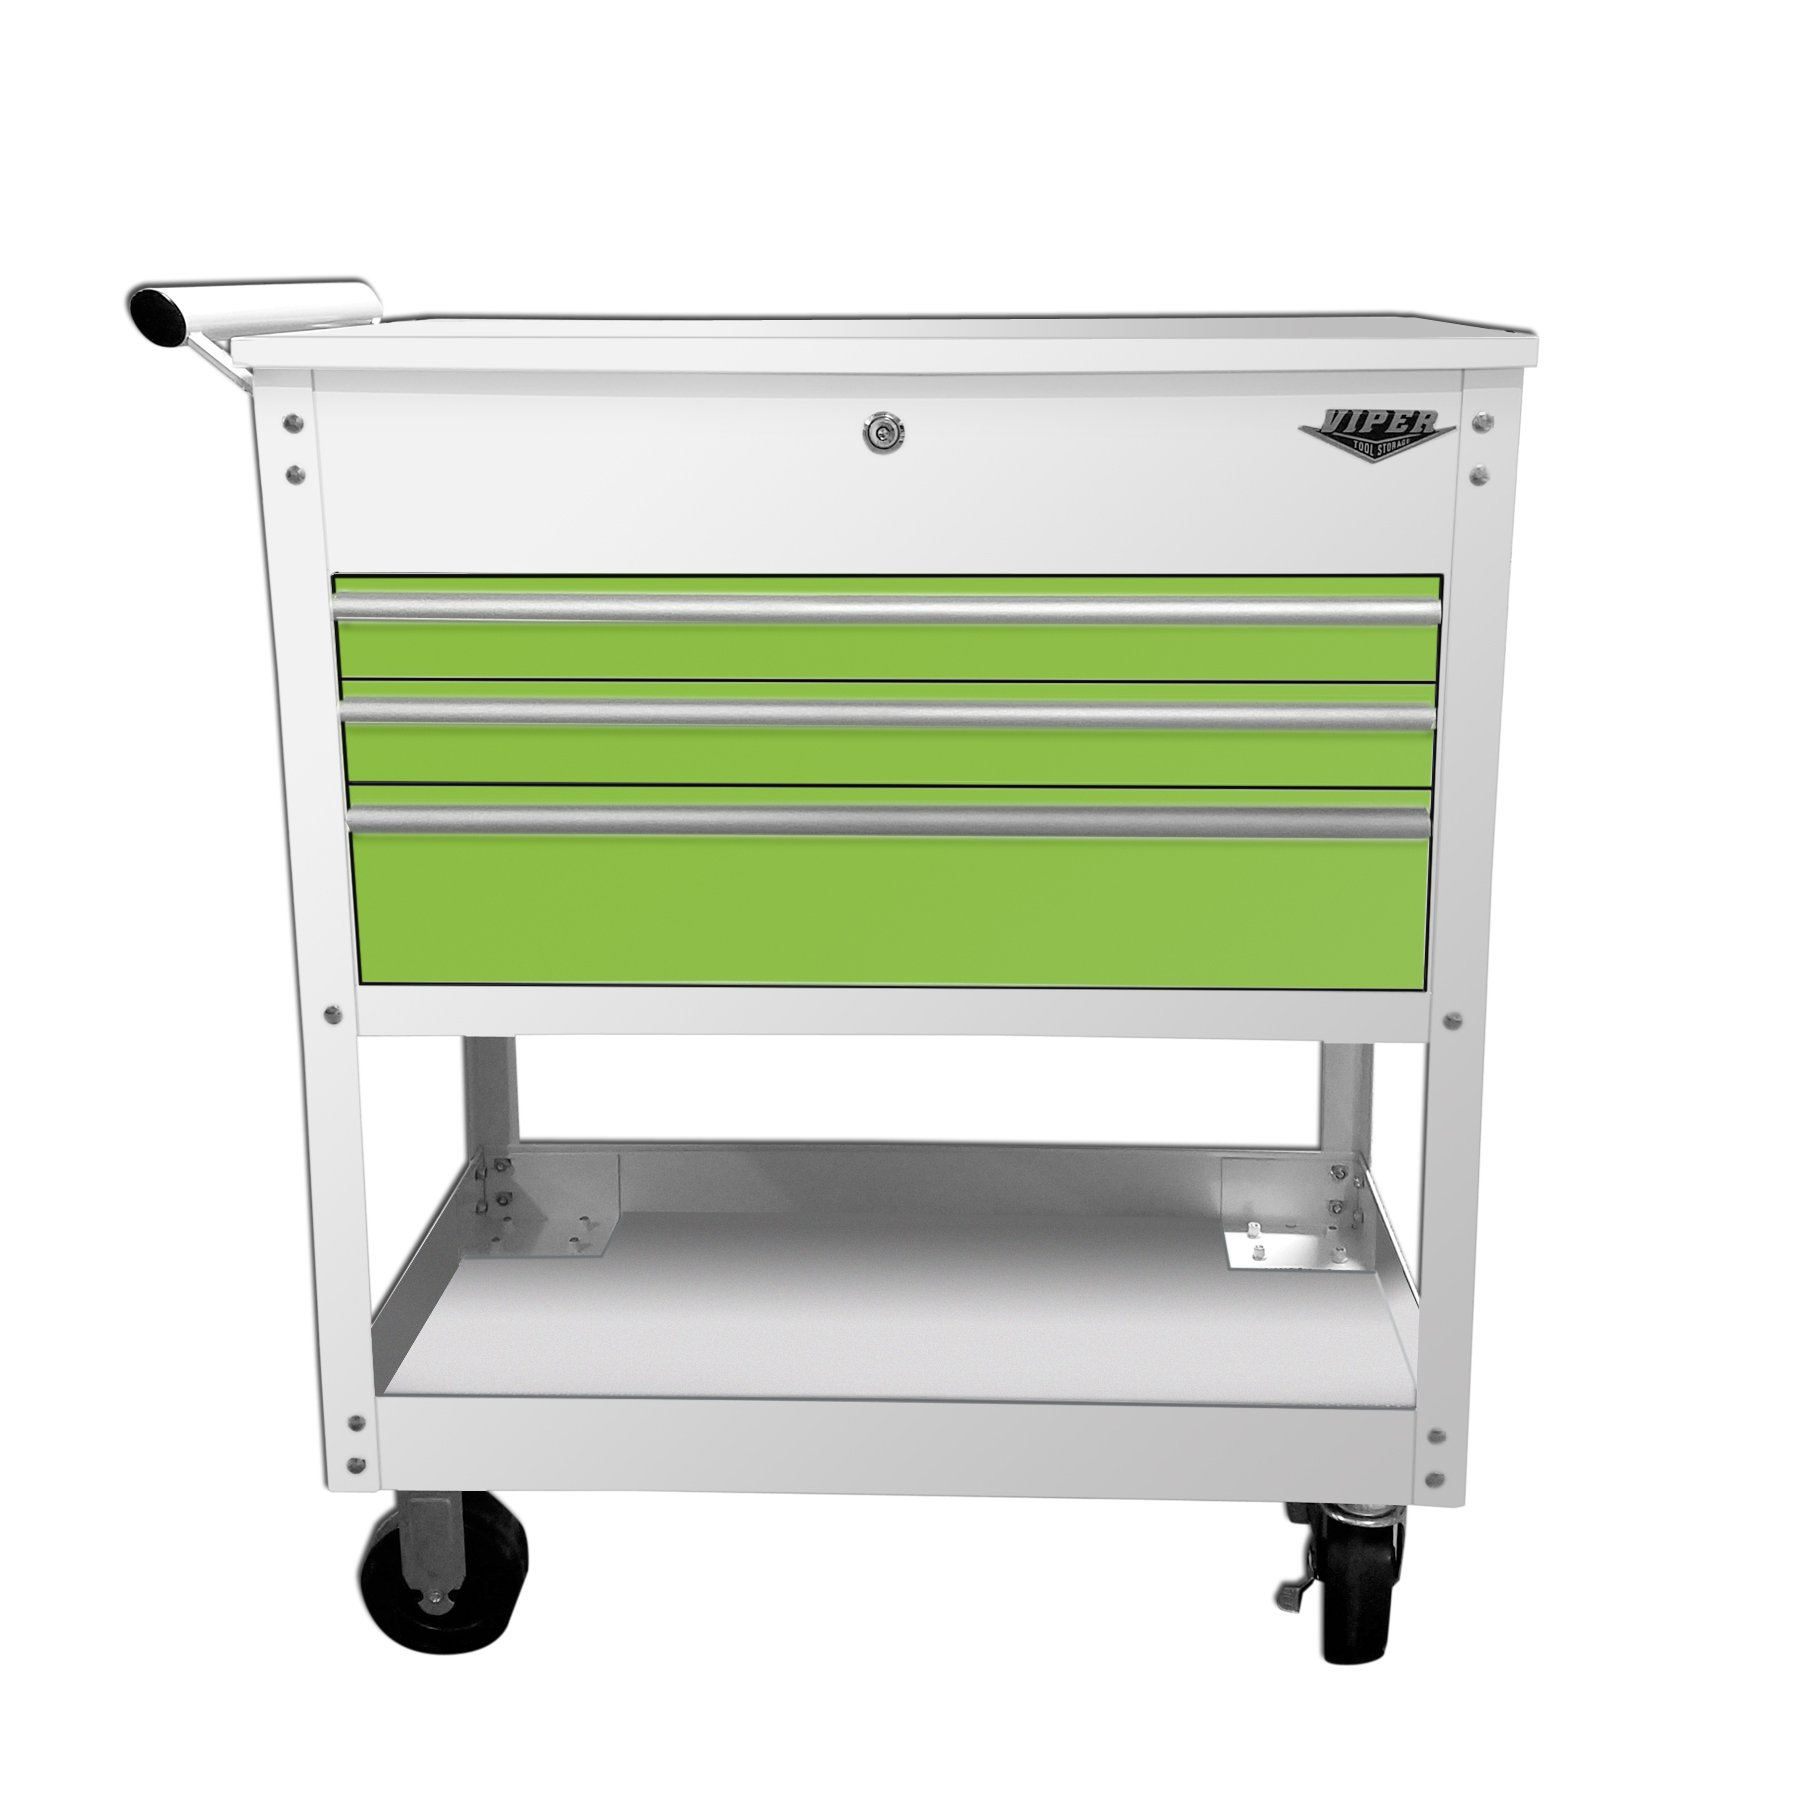 Viper Tool Storage V33UCWLGR 3-Drawer Industrial Utility / Mechanics Cart, 34'', White/Lime Green